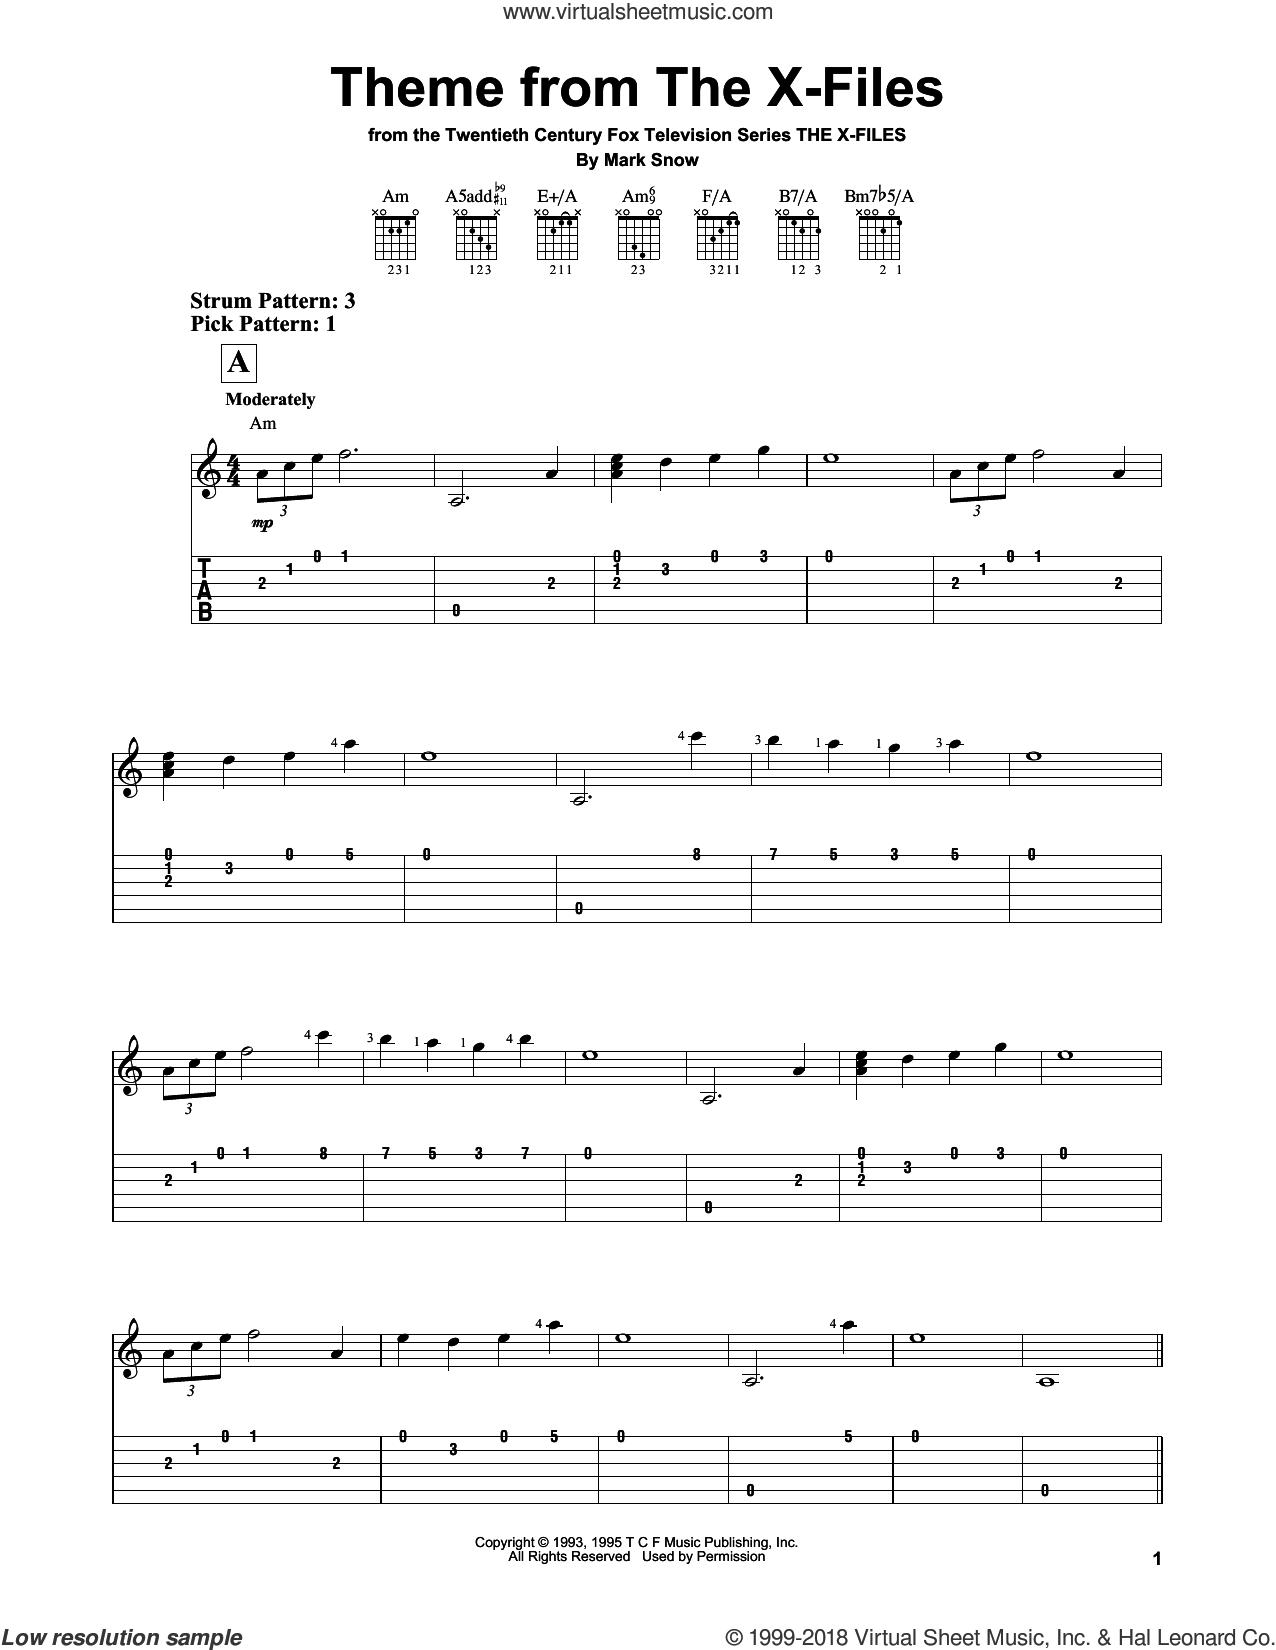 Theme From The X-Files sheet music for guitar solo (easy tablature) by Mark Snow, easy guitar (easy tablature). Score Image Preview.